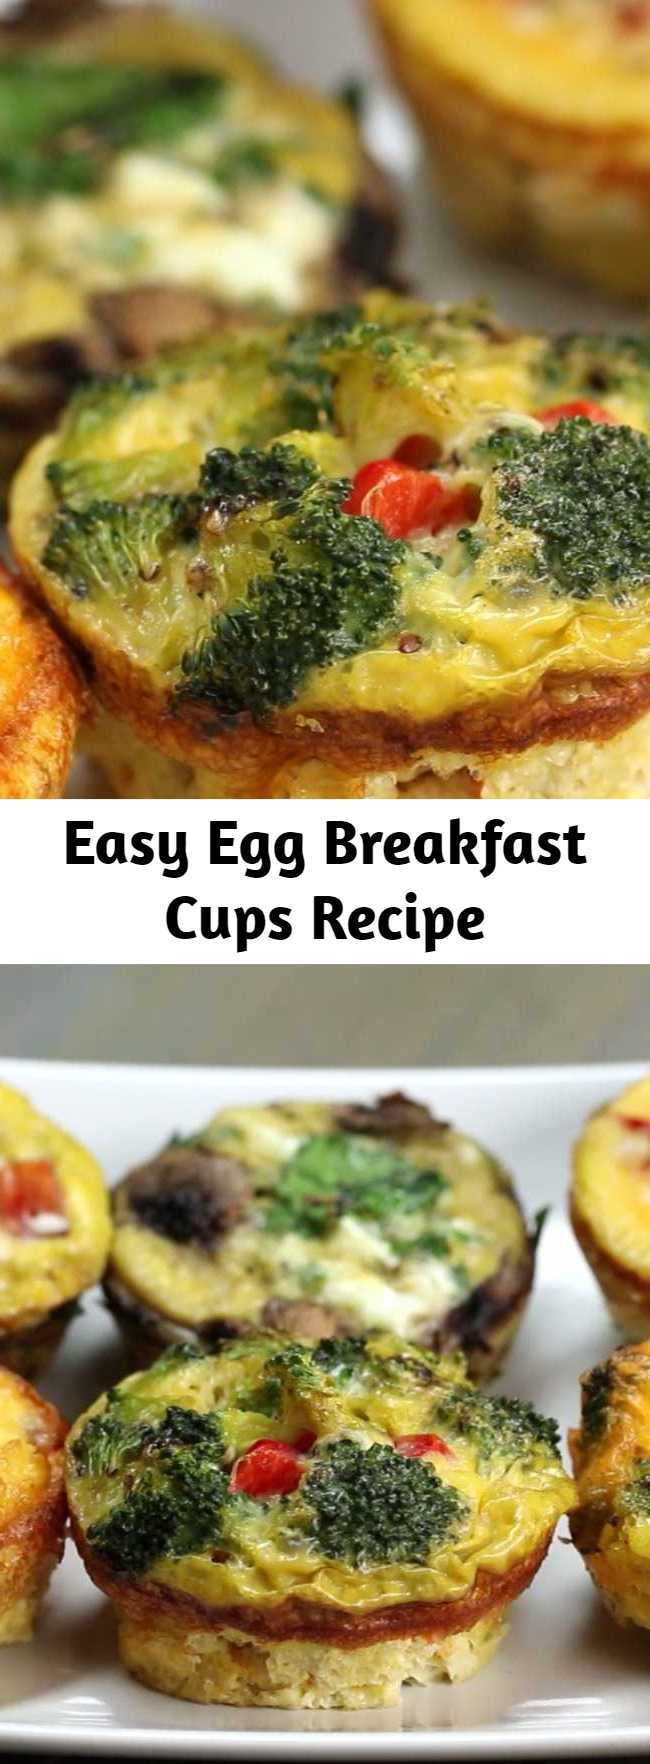 Easy Egg Breakfast Cups Recipe - Egg Breakfast Cups are low carb, filling and quick to grab while running out of the door! Can be cooked ahead of time and refrigerated for when you need them to grab and go!